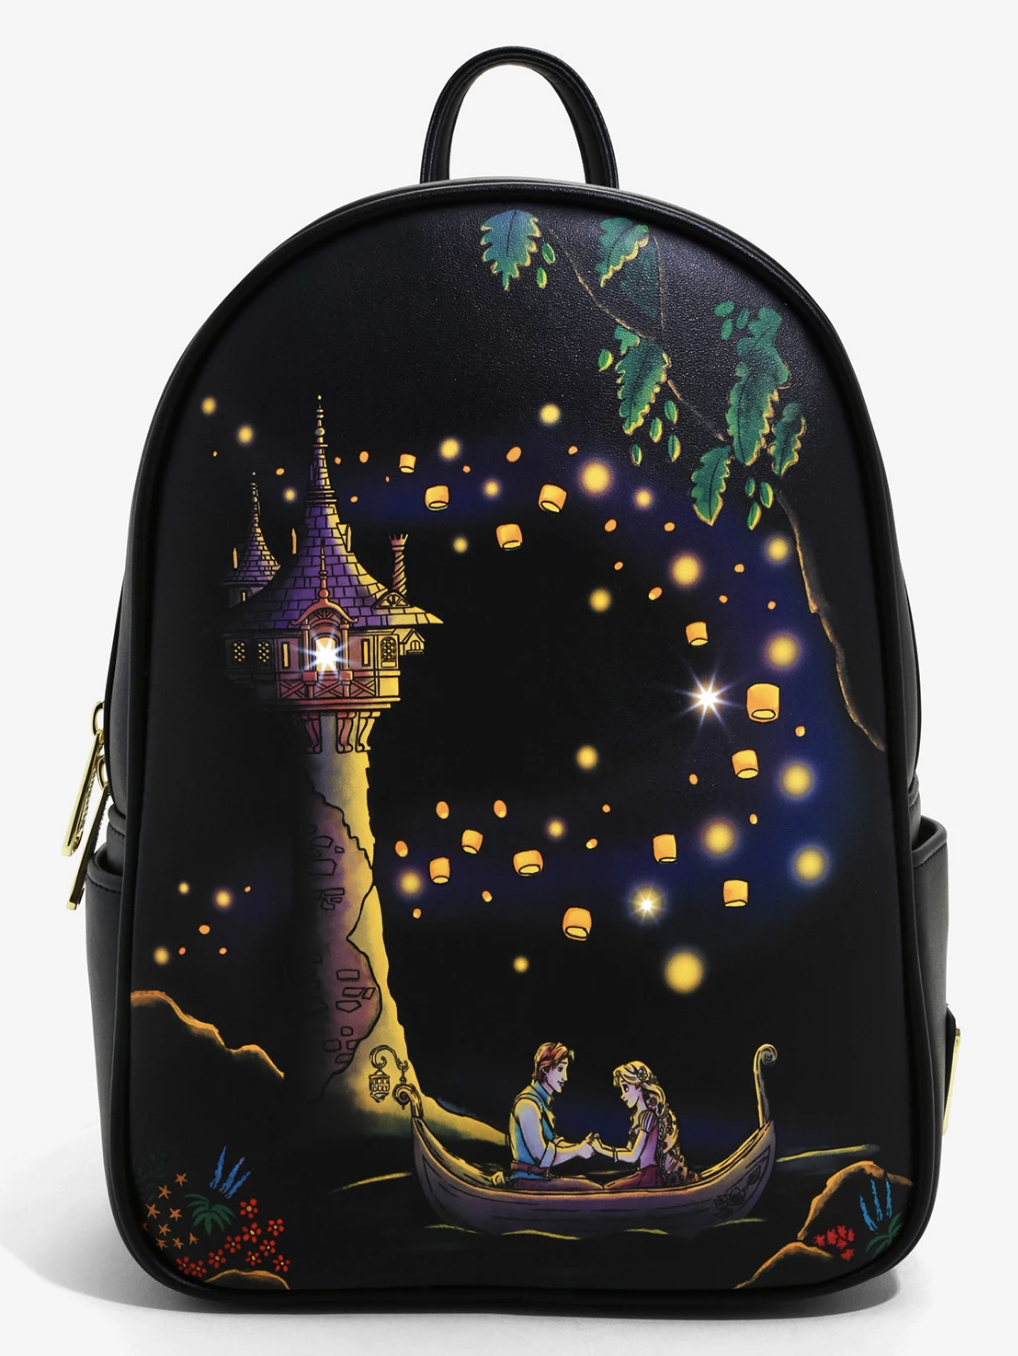 Wow A Light Up Tangled Loungefly Is Now Available For Pre Order Online The Disney Food Blog